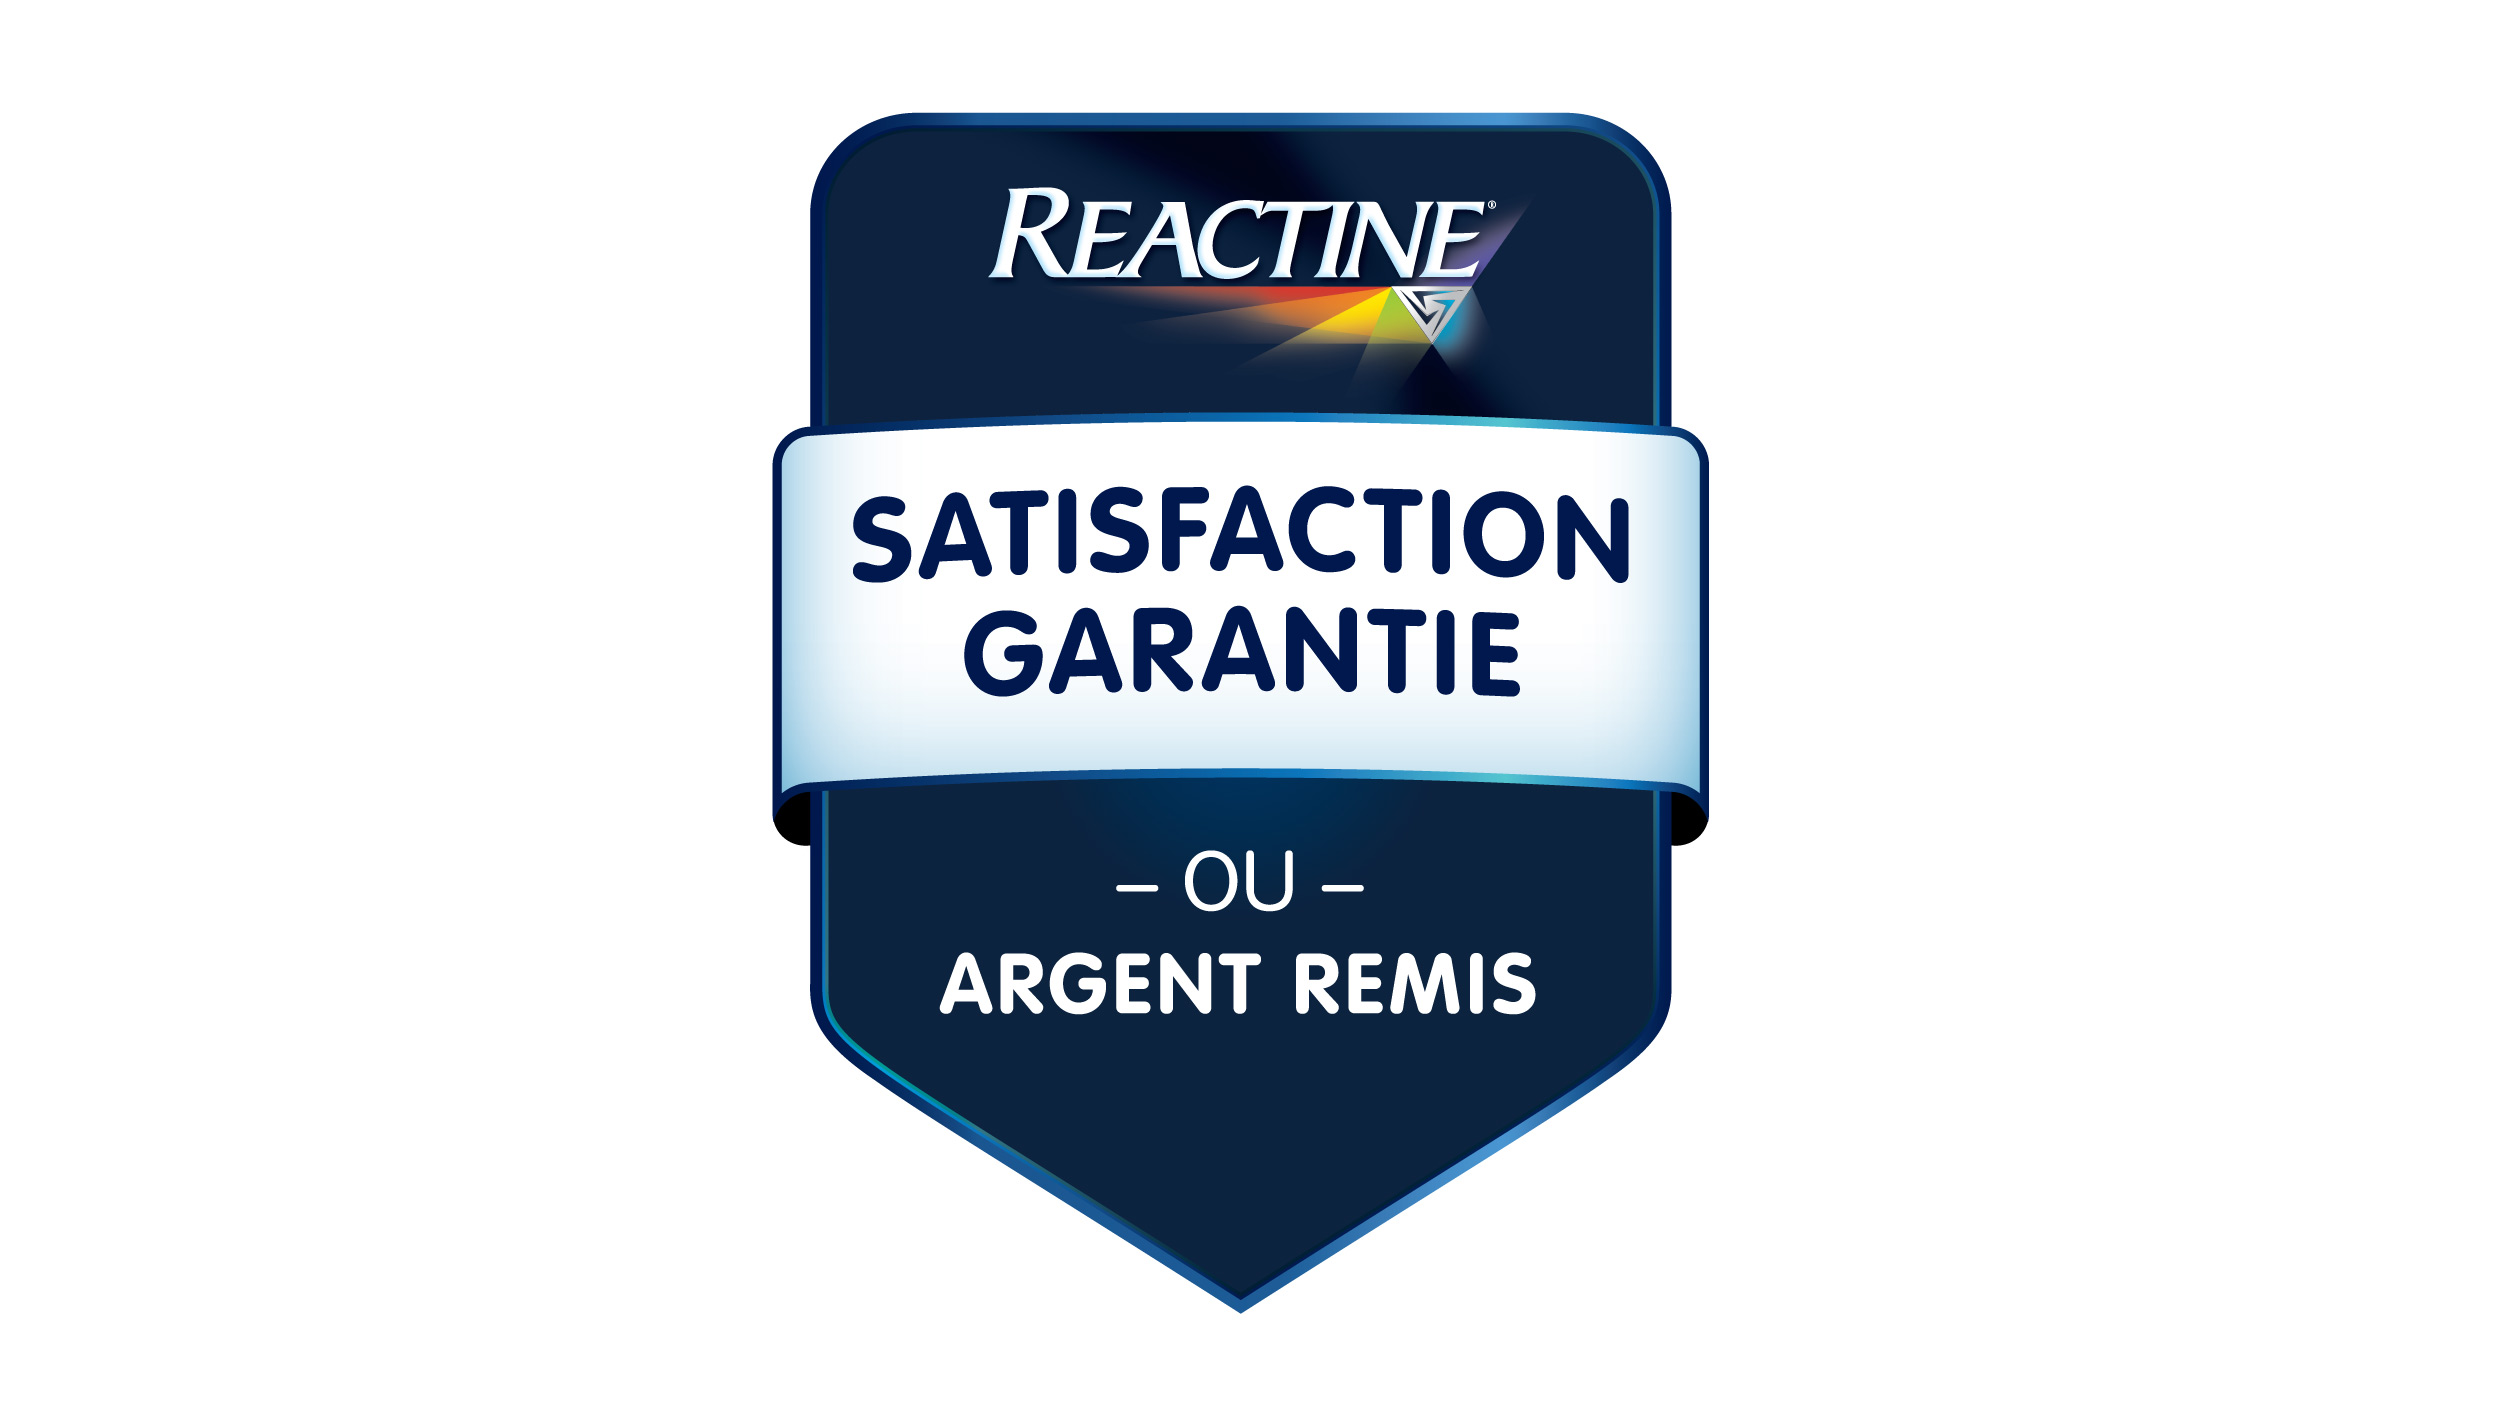 Reactine satisfaction garantie our argent remis logo